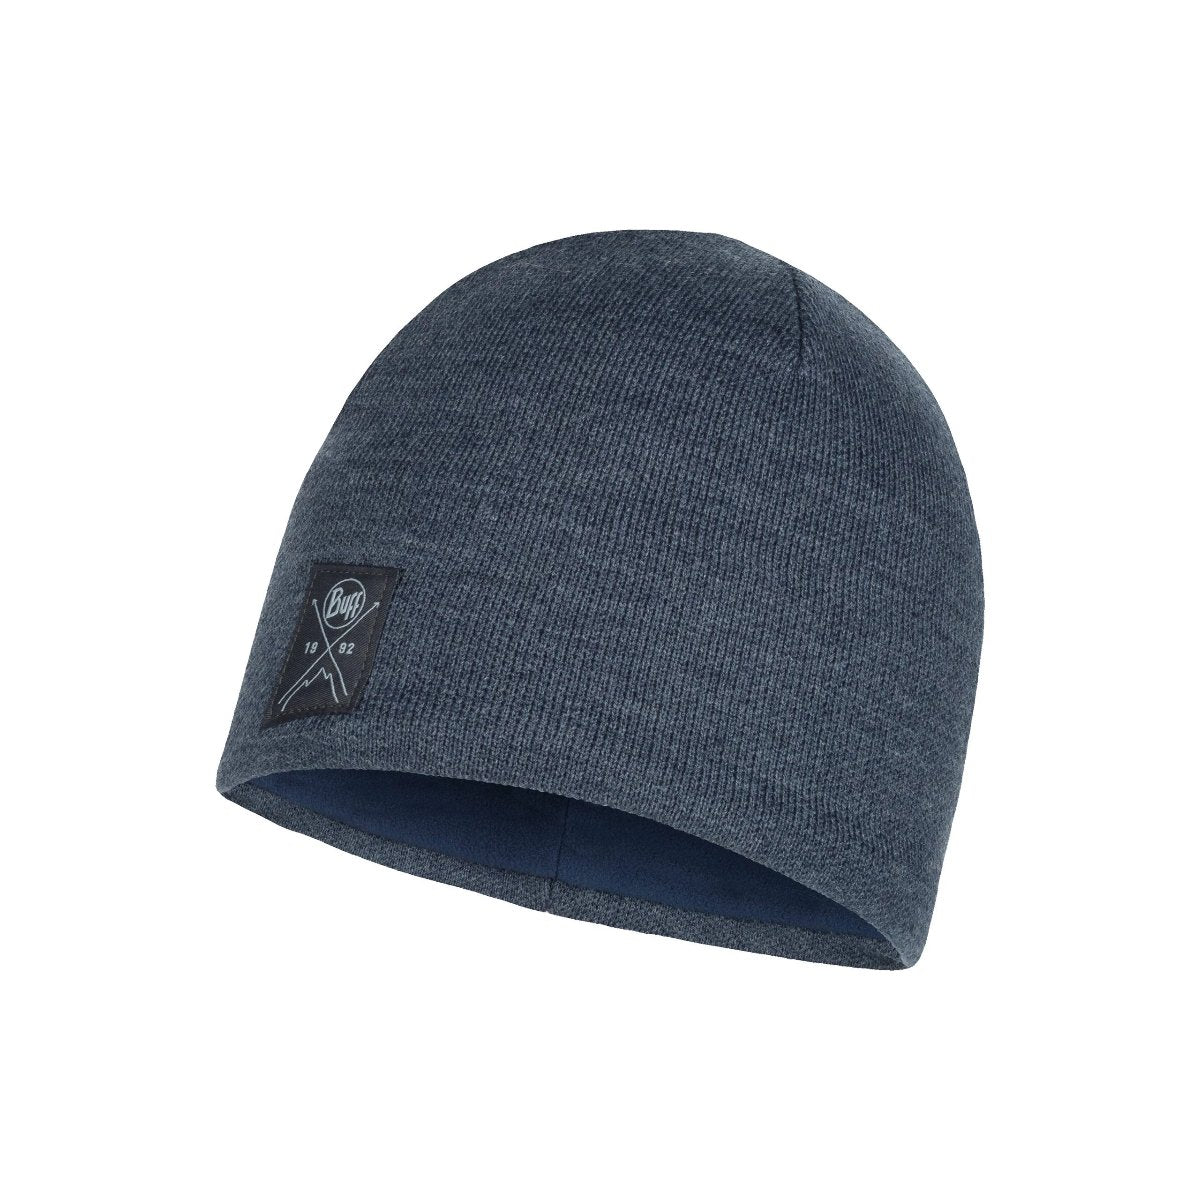 113519.787, Buff, Knitted & Polar Hat Solid Navy, Solid Navy, Beanies for Men | Knitted Beanie